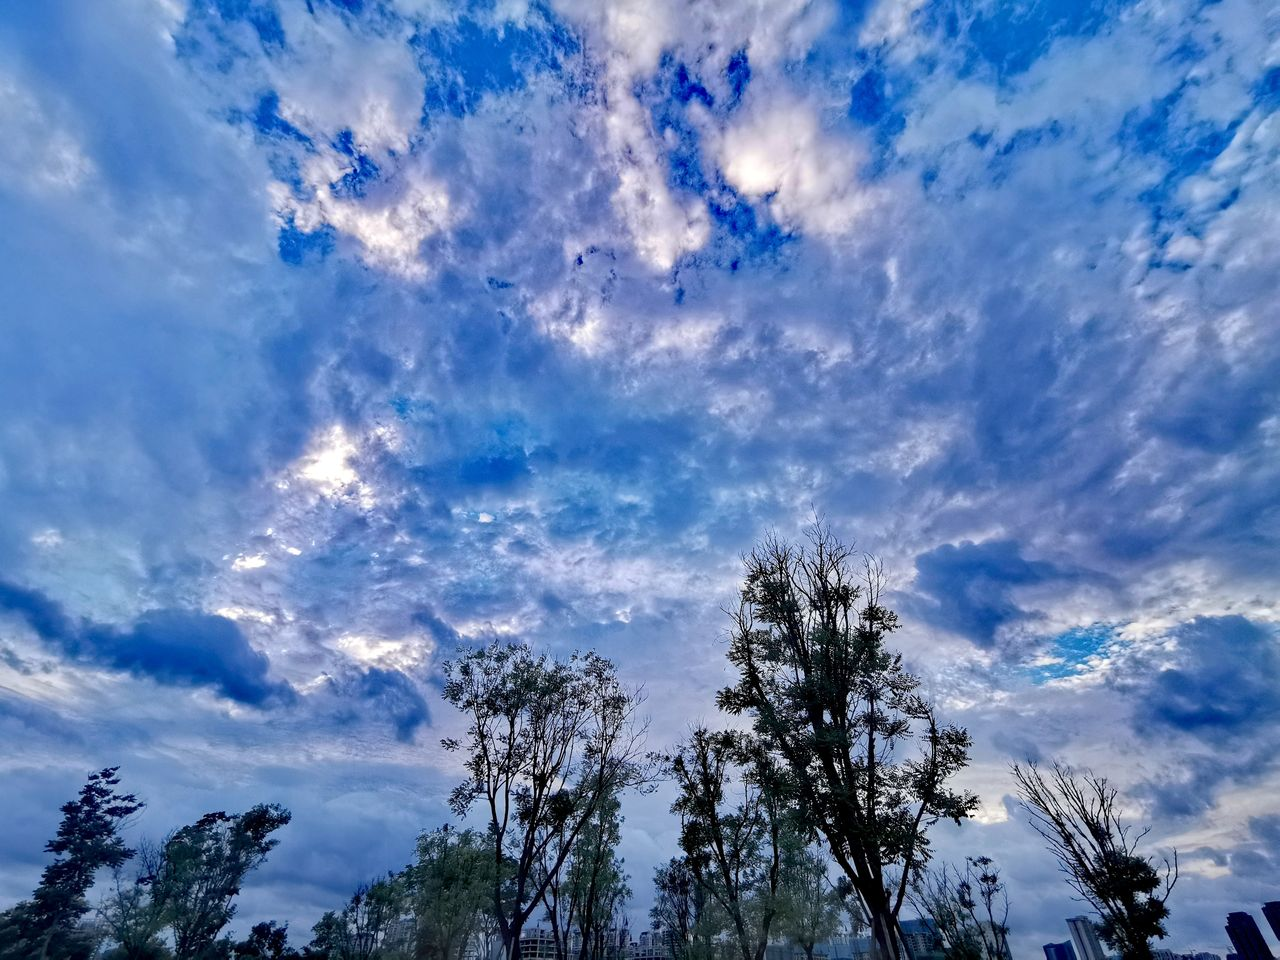 cloud - sky, sky, tree, low angle view, plant, beauty in nature, tranquility, no people, growth, scenics - nature, tranquil scene, nature, day, blue, outdoors, idyllic, non-urban scene, branch, silhouette